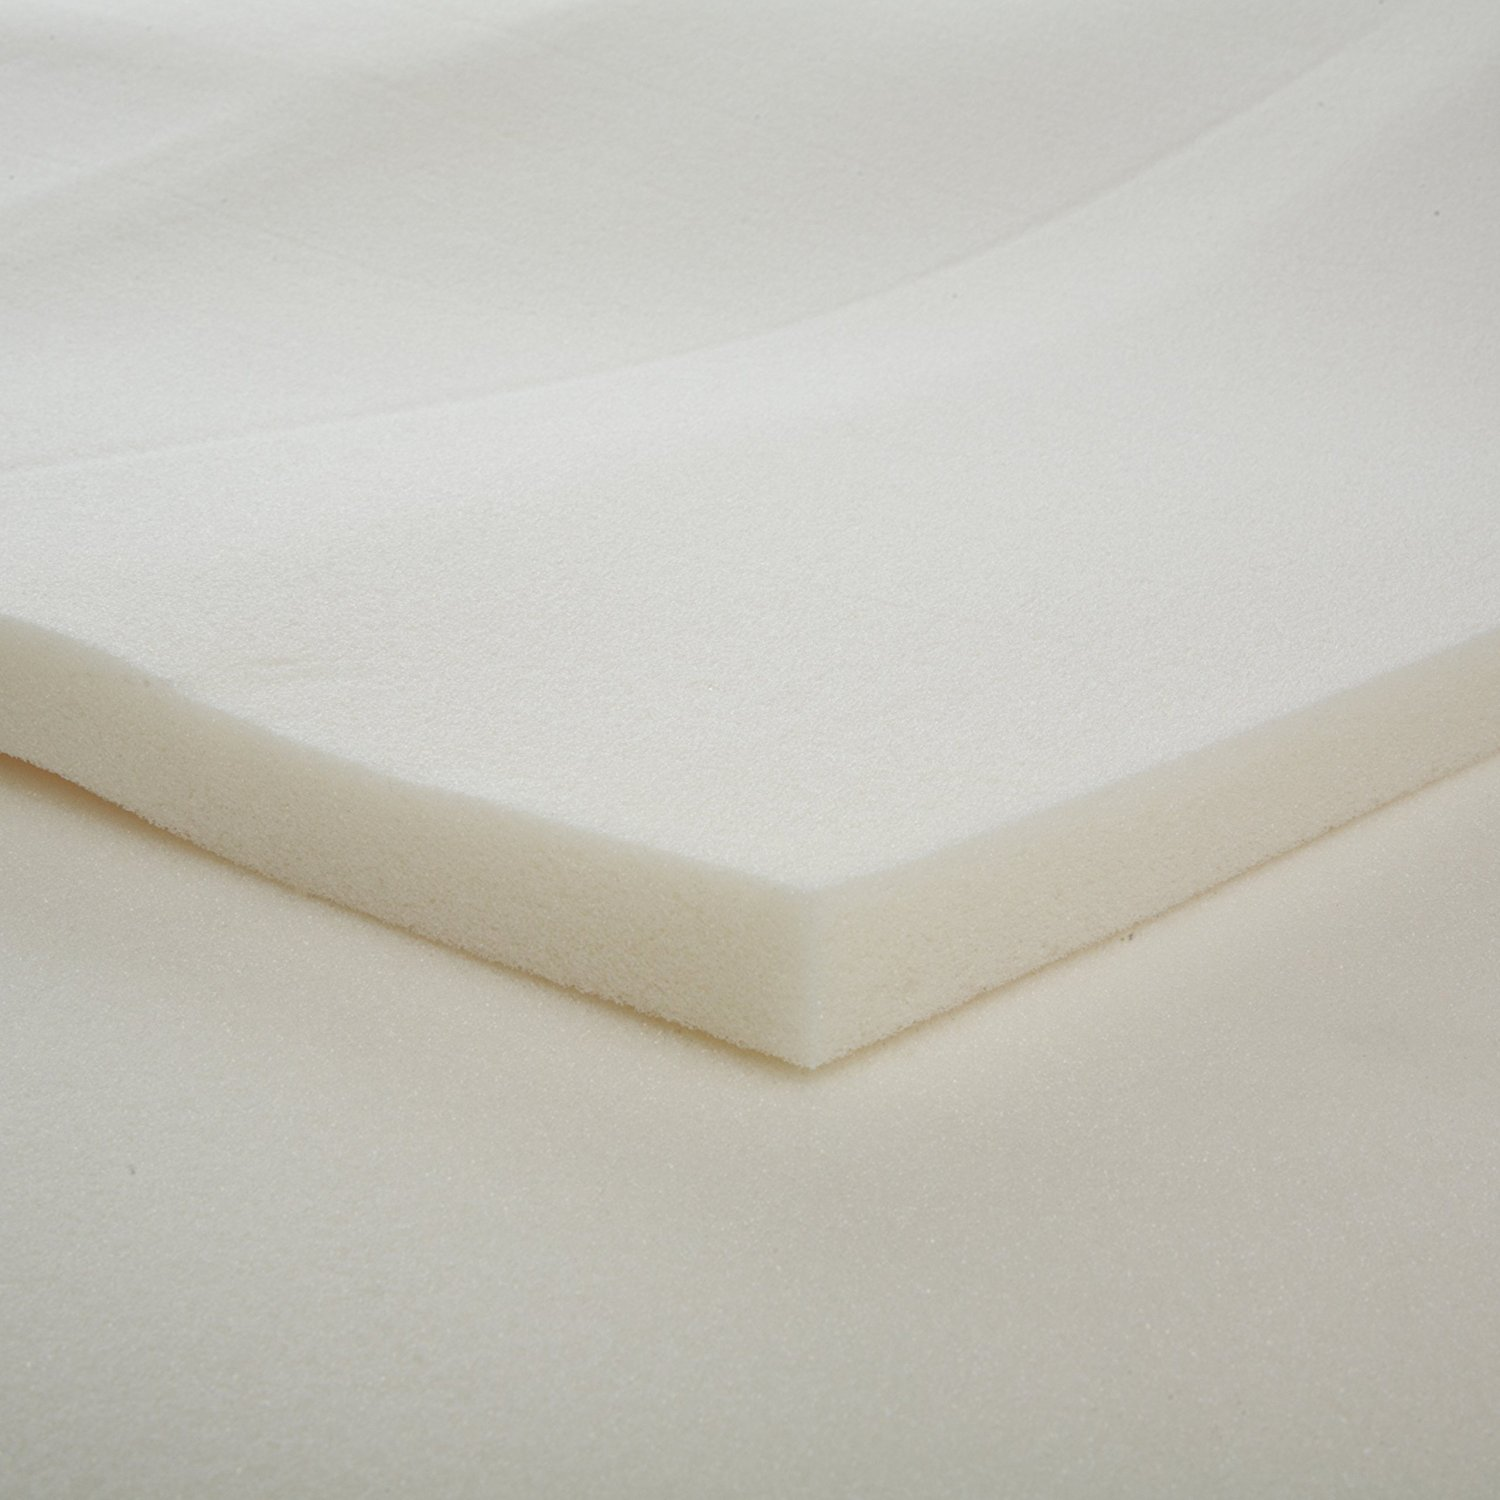 Memory Foam Mattress Toppers Sleepbetter 1